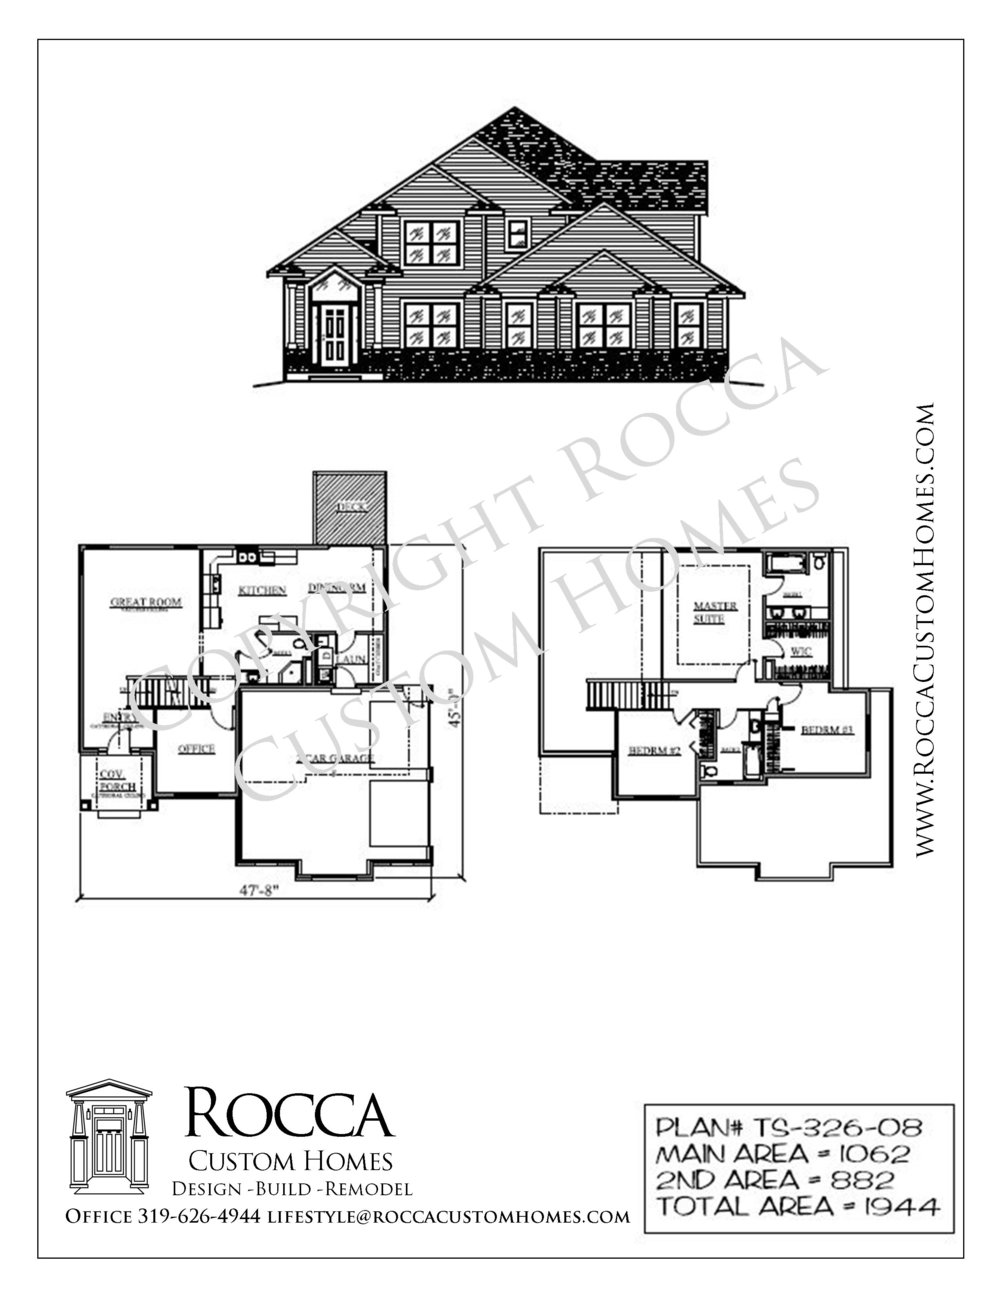 Home Plans — Rocca Custom Homes